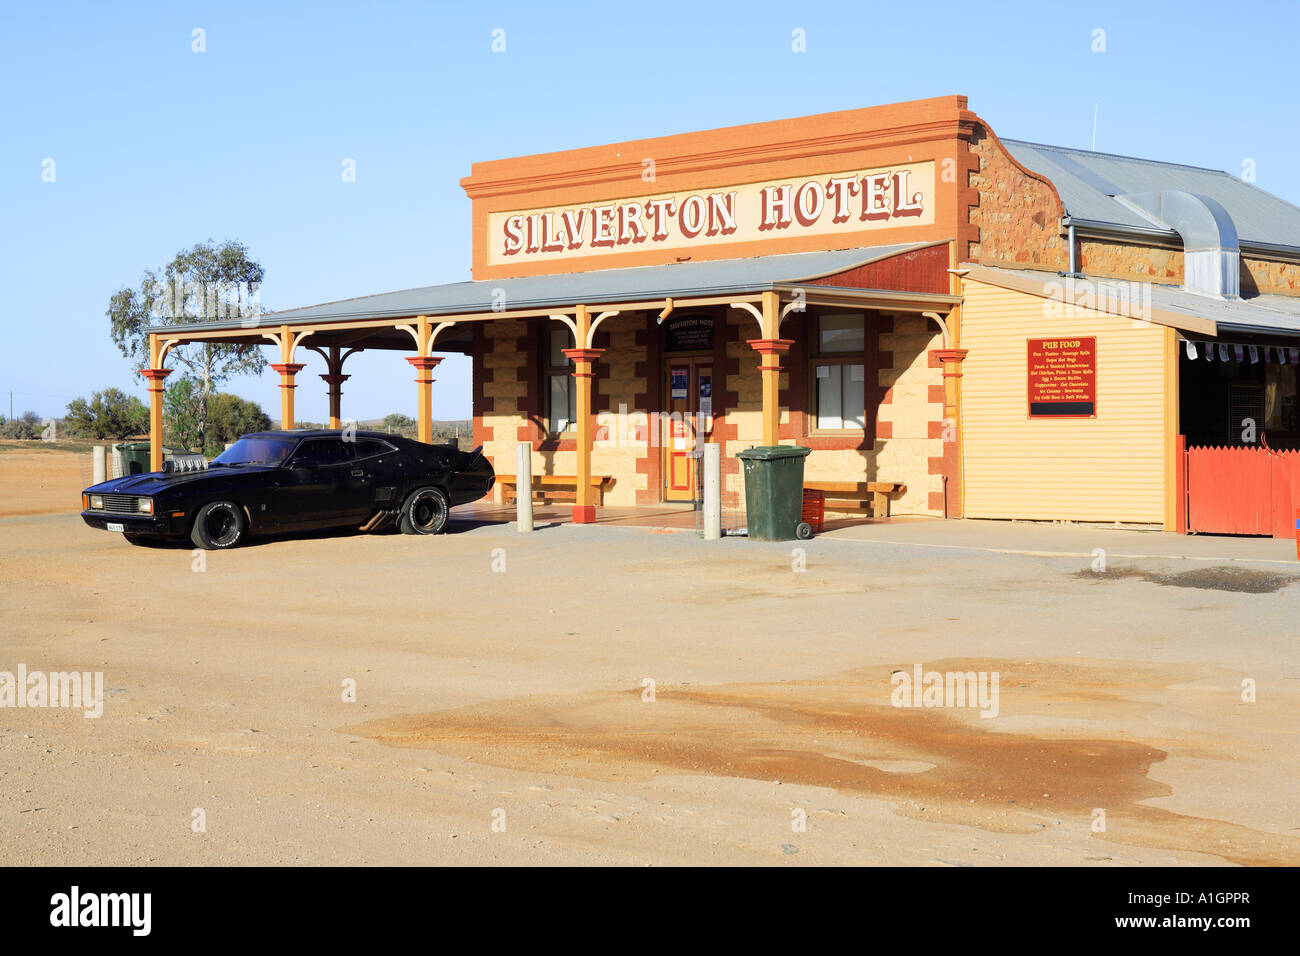 Historic Silverton Hotel With Black Car Used In Mad Max Movie Stock